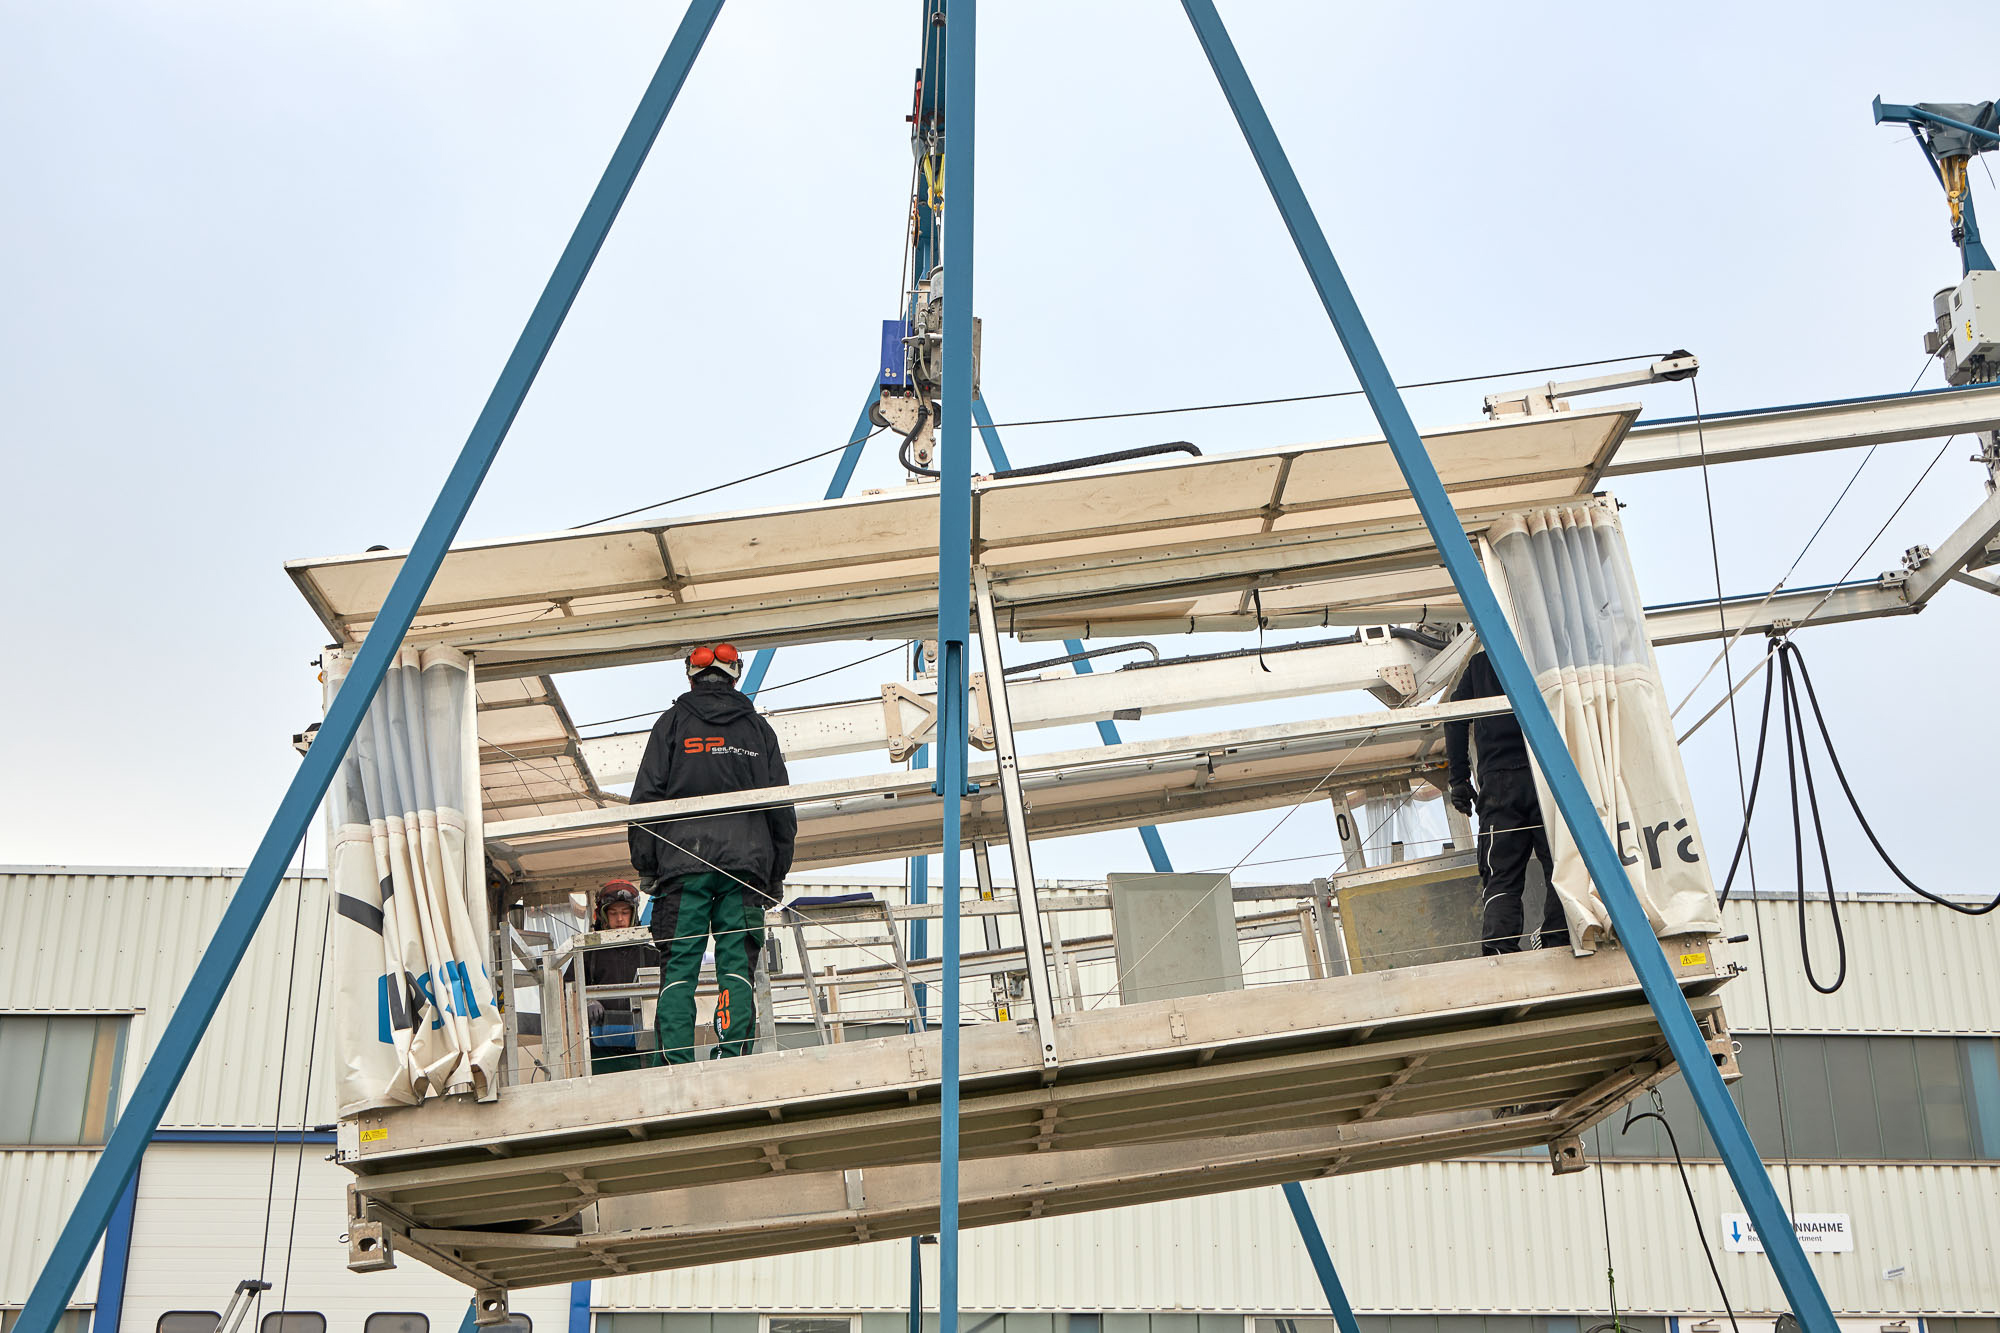 Rotor blade access system terra 1.1 with customer in training at demo centre